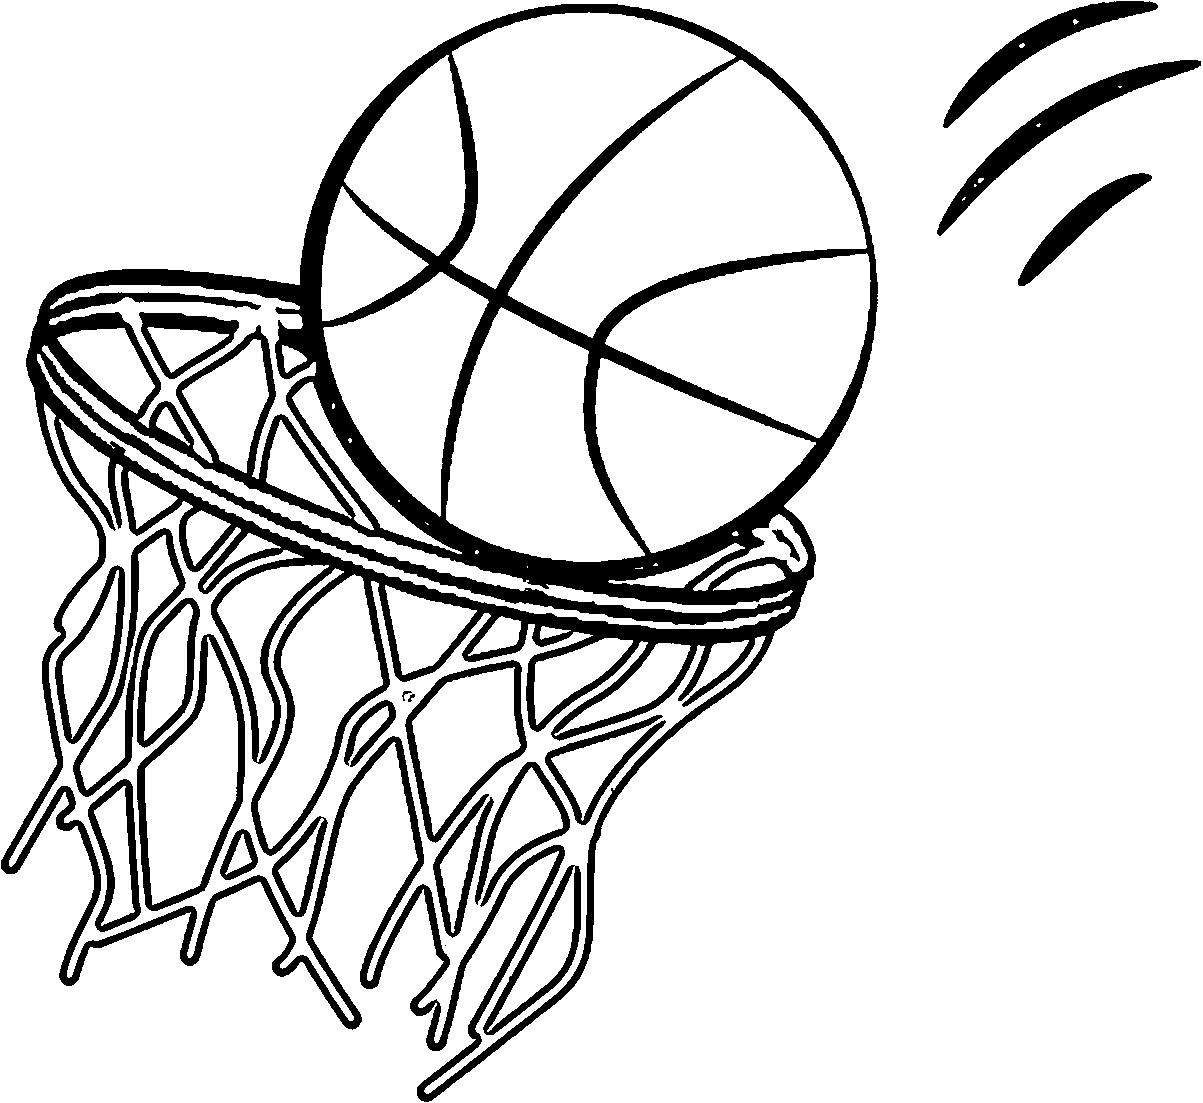 Basketball Hoop Coloring Page At Getcolorings